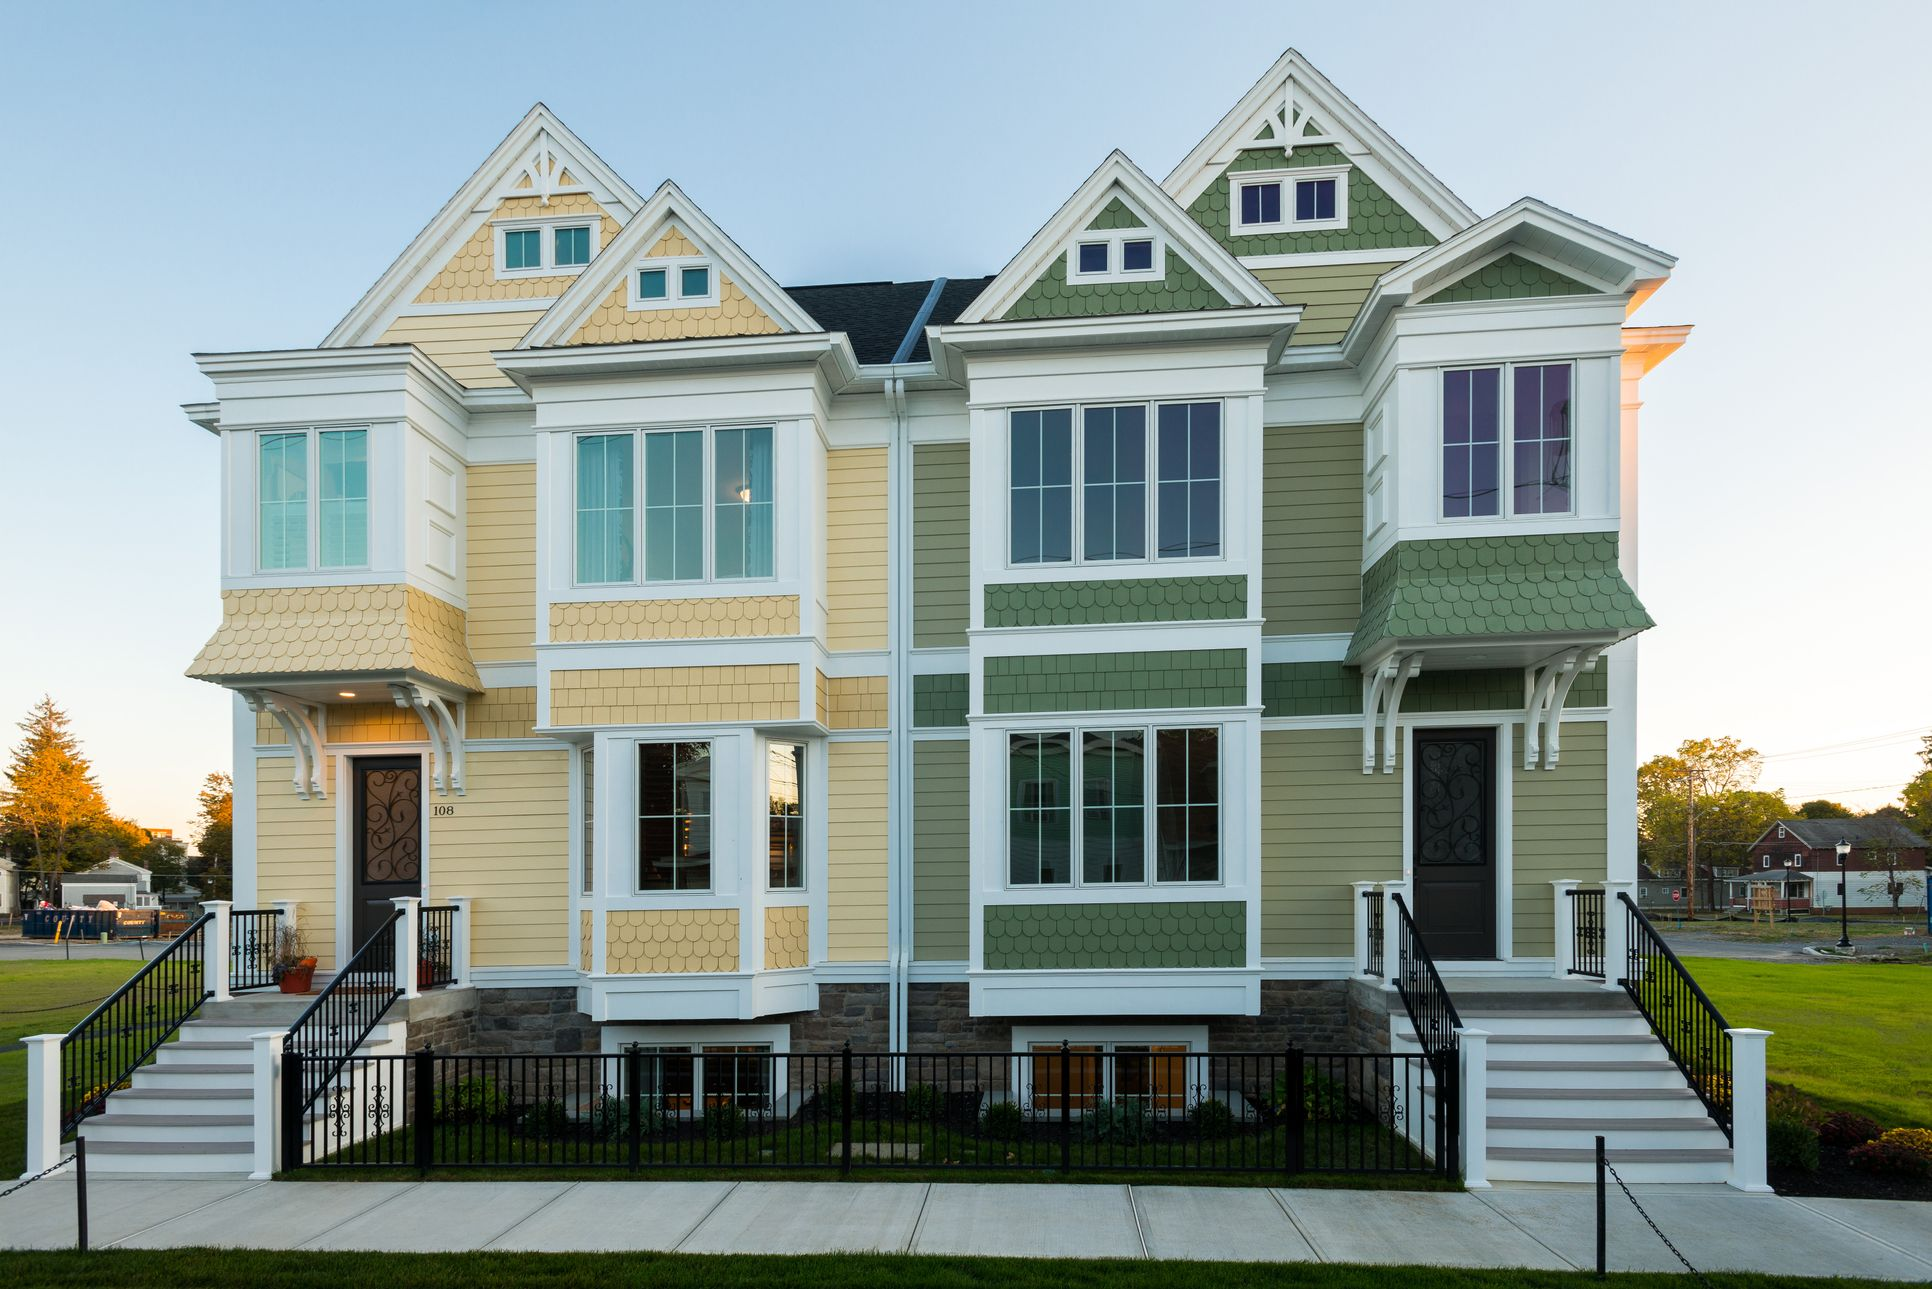 City Square Luxury Townhomes:City Square Luxury Townhomes